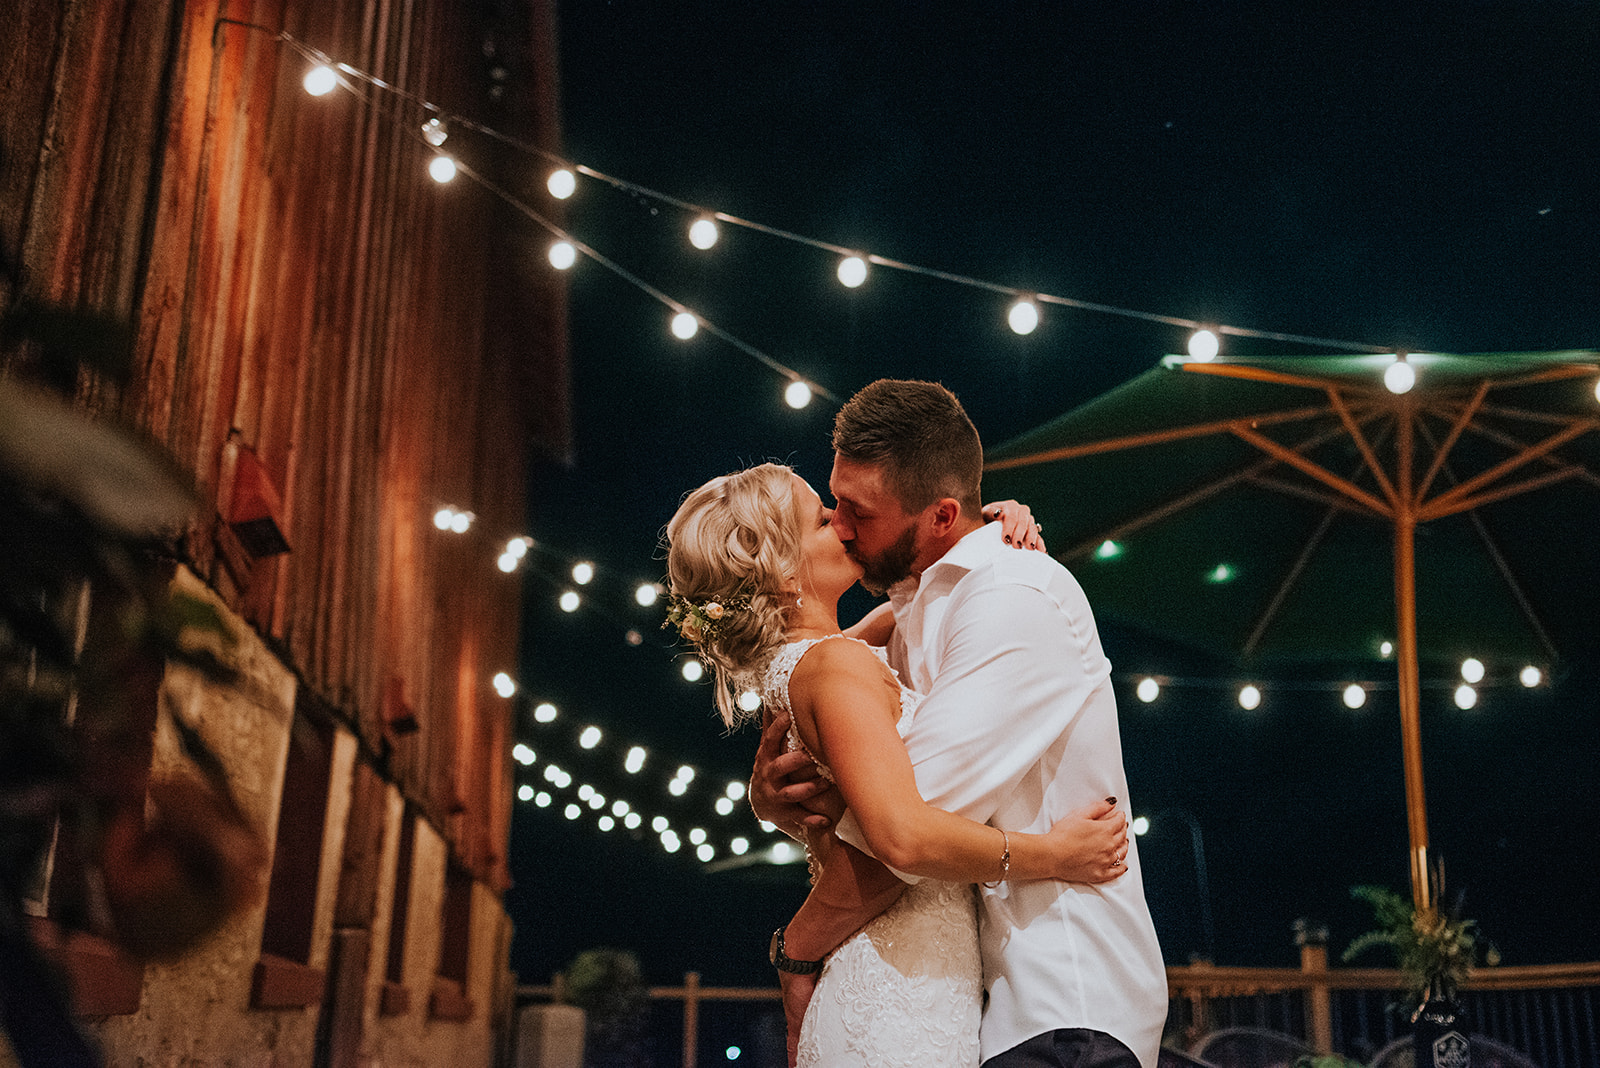 overthevineswisconsinwedding_1690.jpg